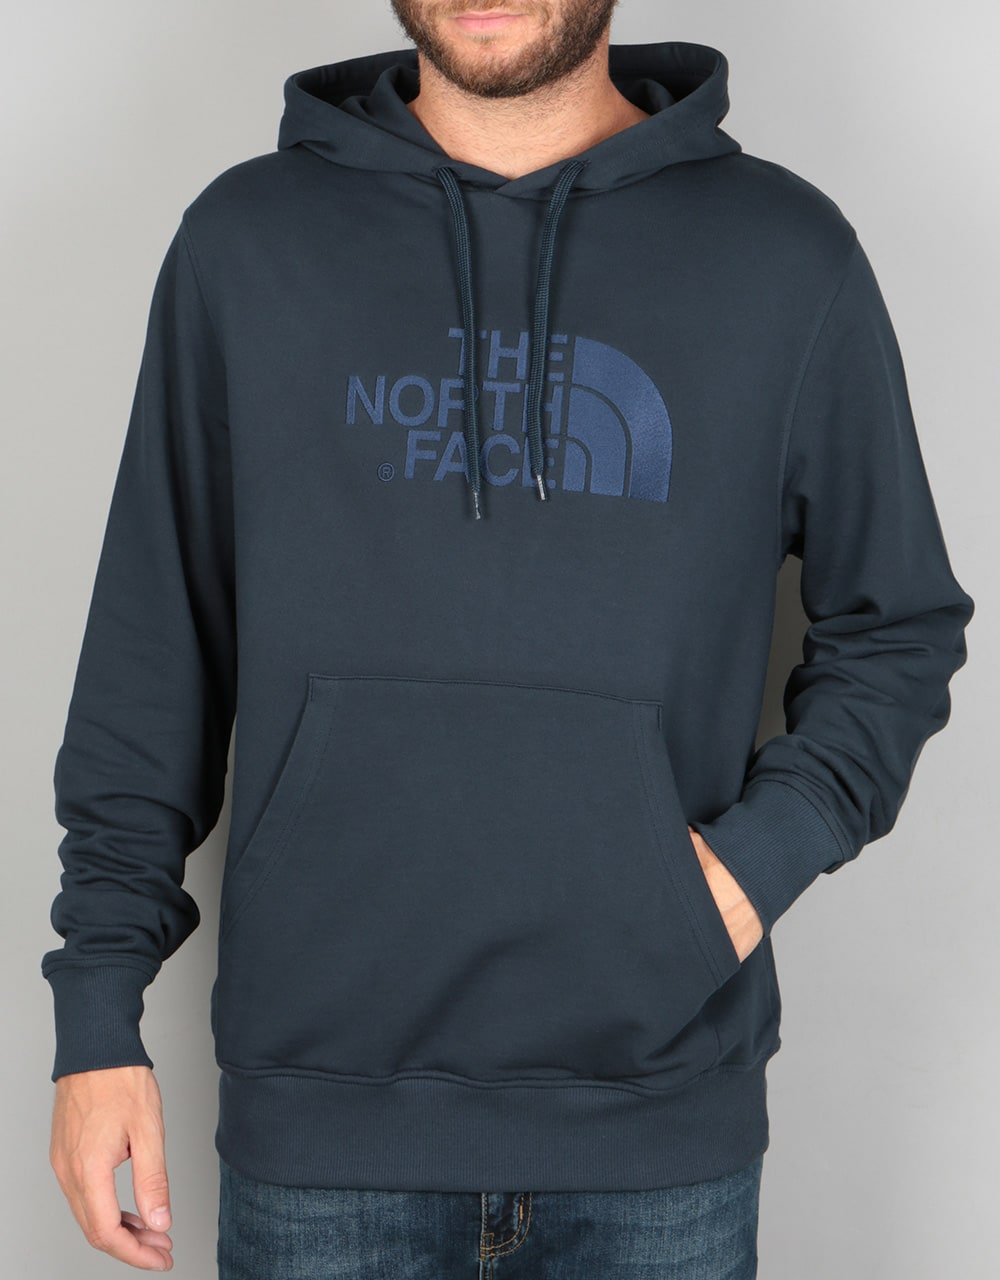 The North Face Light Drew Peak Pullover Hoodie - Urban Navy | Skate Pullover Hoodies | Mens ...